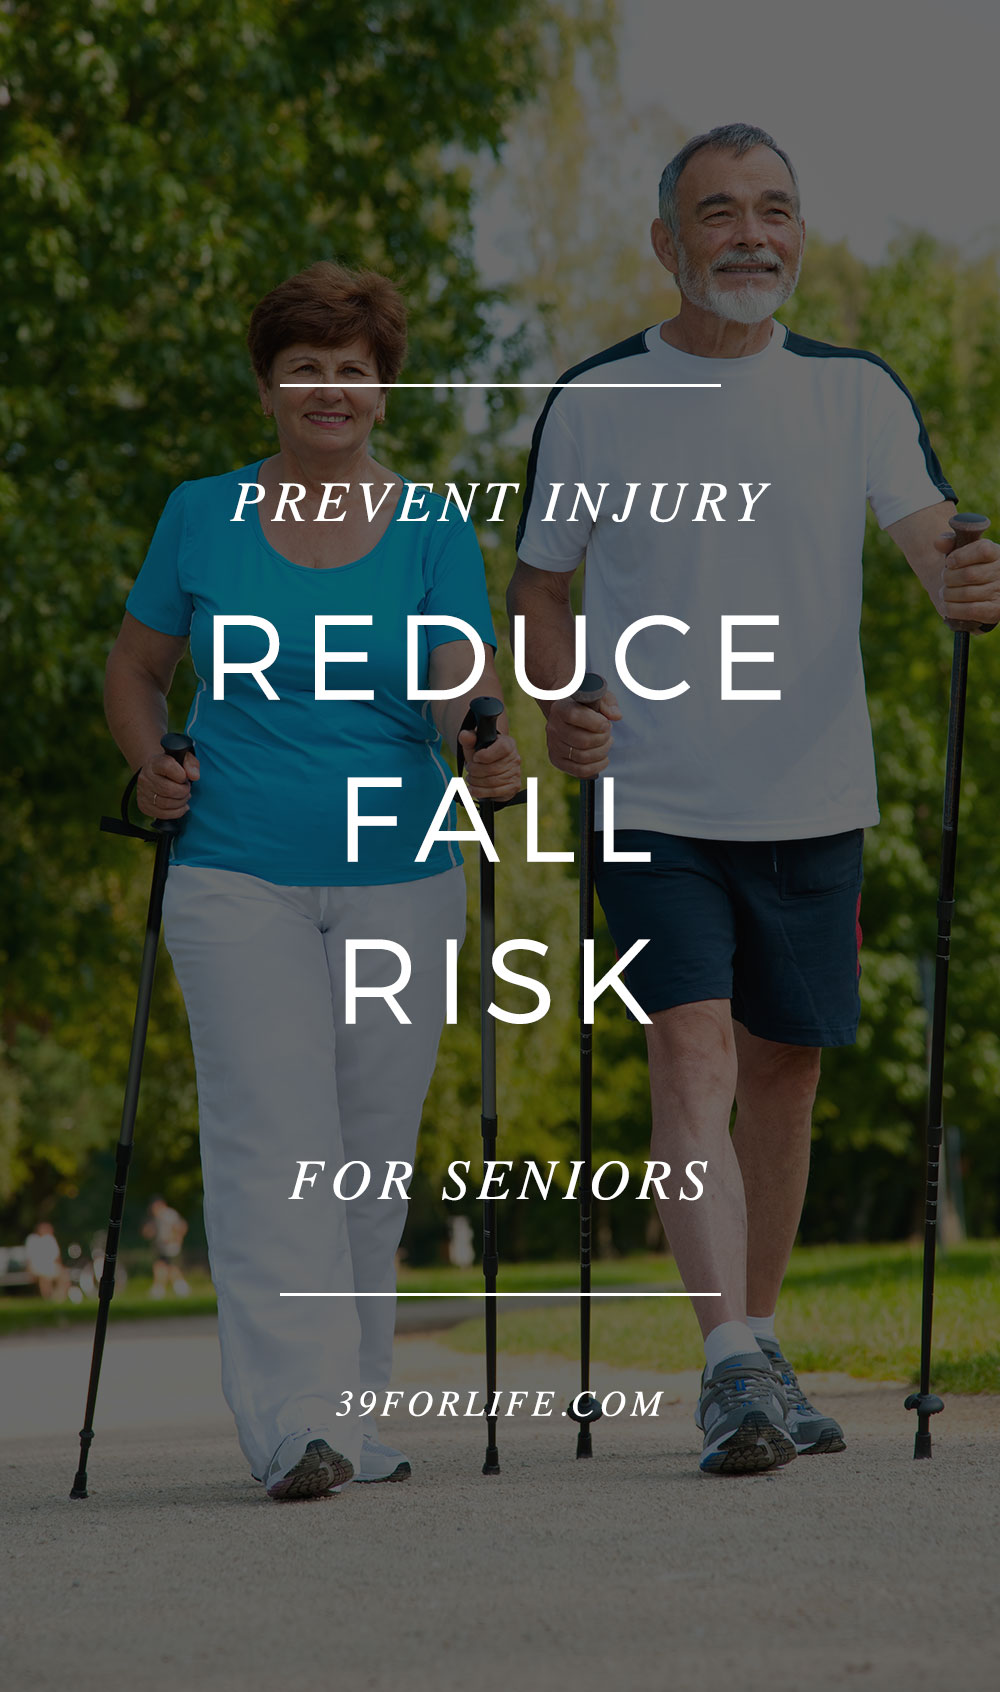 Do you know the major causes of injury and death amongst senior citizens? Falls account for 2.5 injuries per year. Here is how to prevent them.